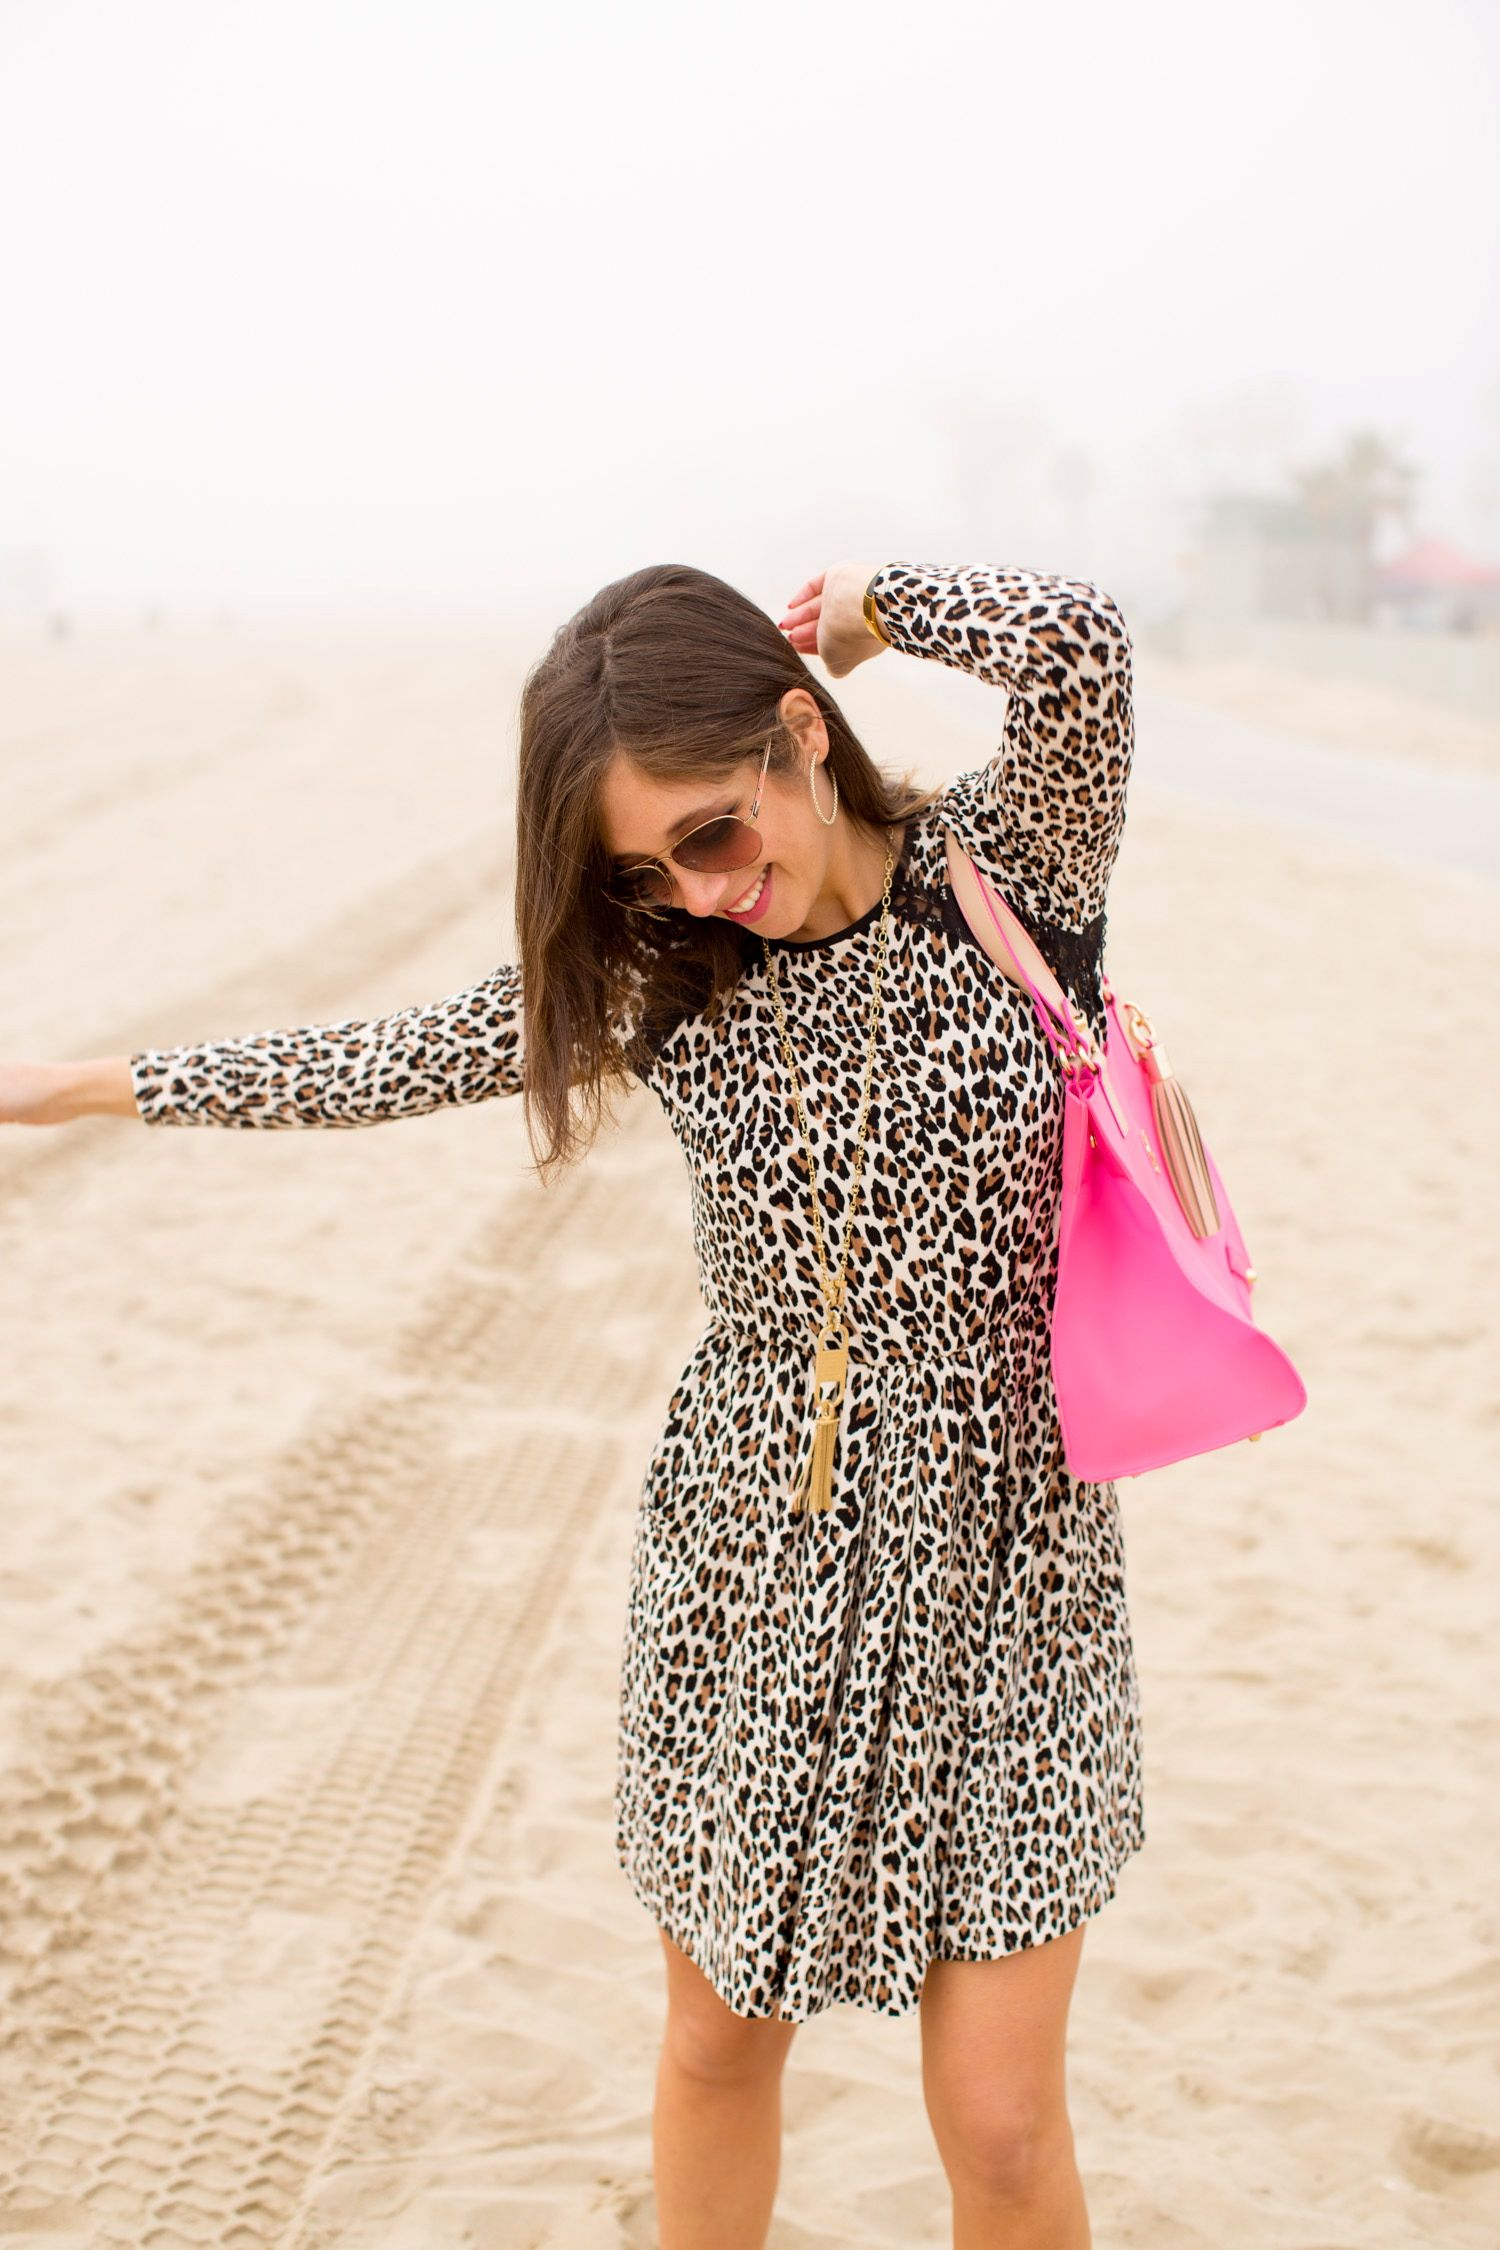 Leopard print dress and a bright pink bag #GoWest